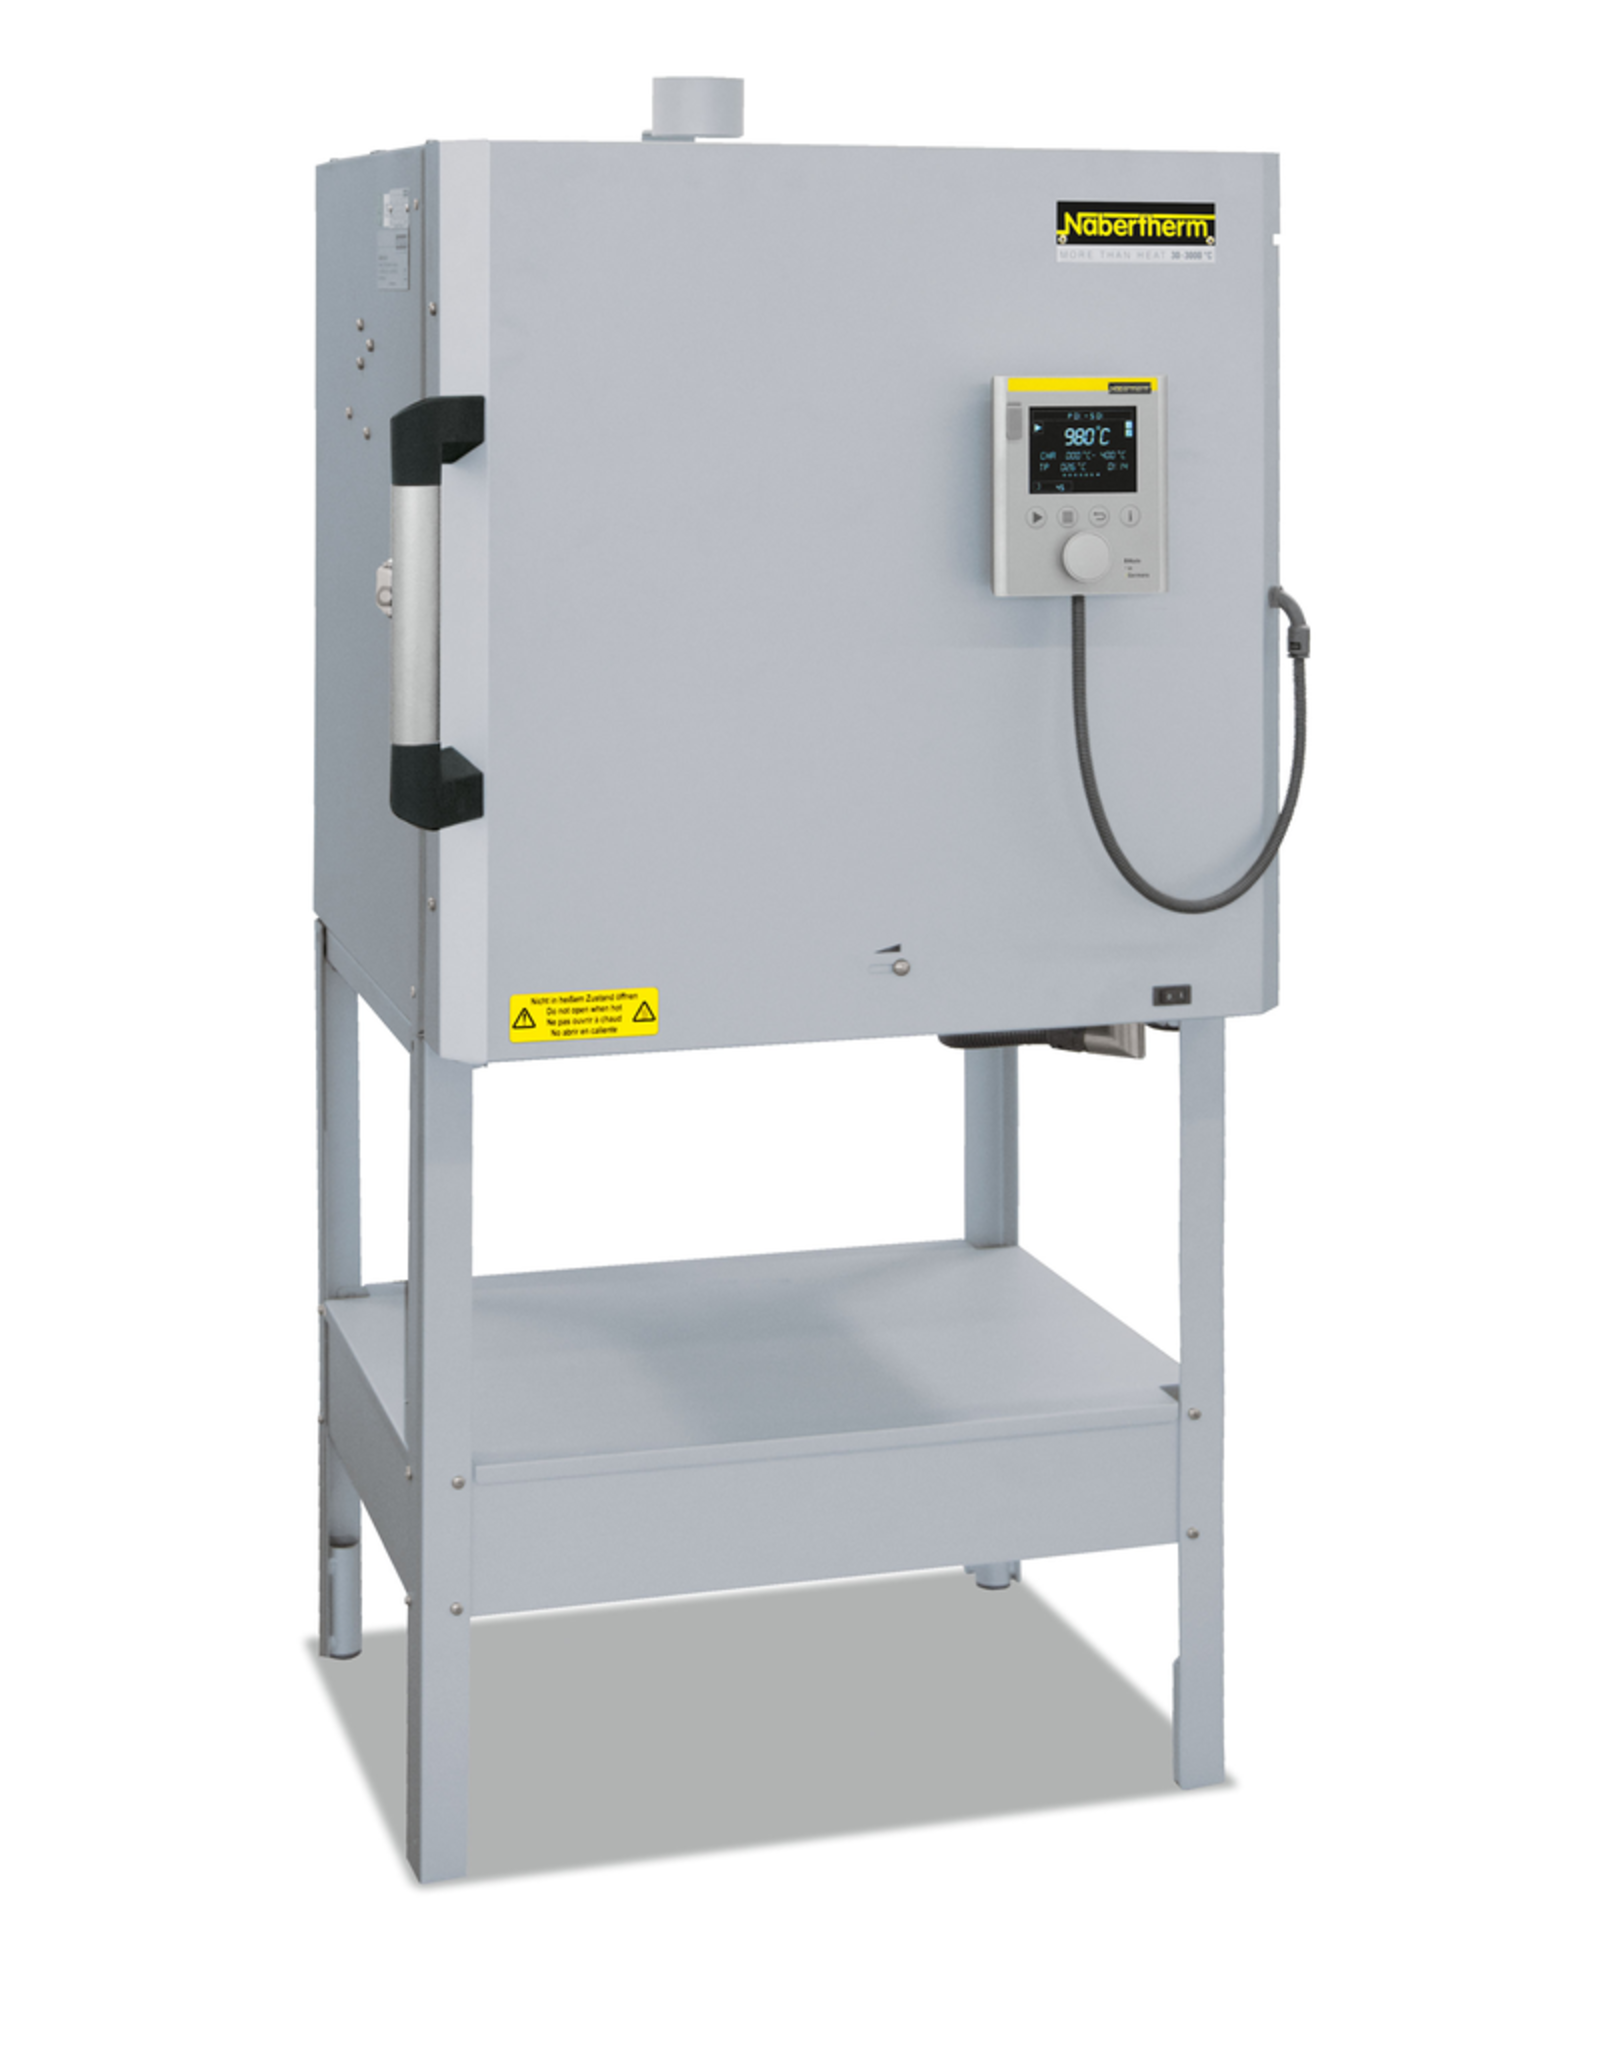 Nabertherm 70Lt Draw loading Kiln with 2 sided Heating 1300˚C max.